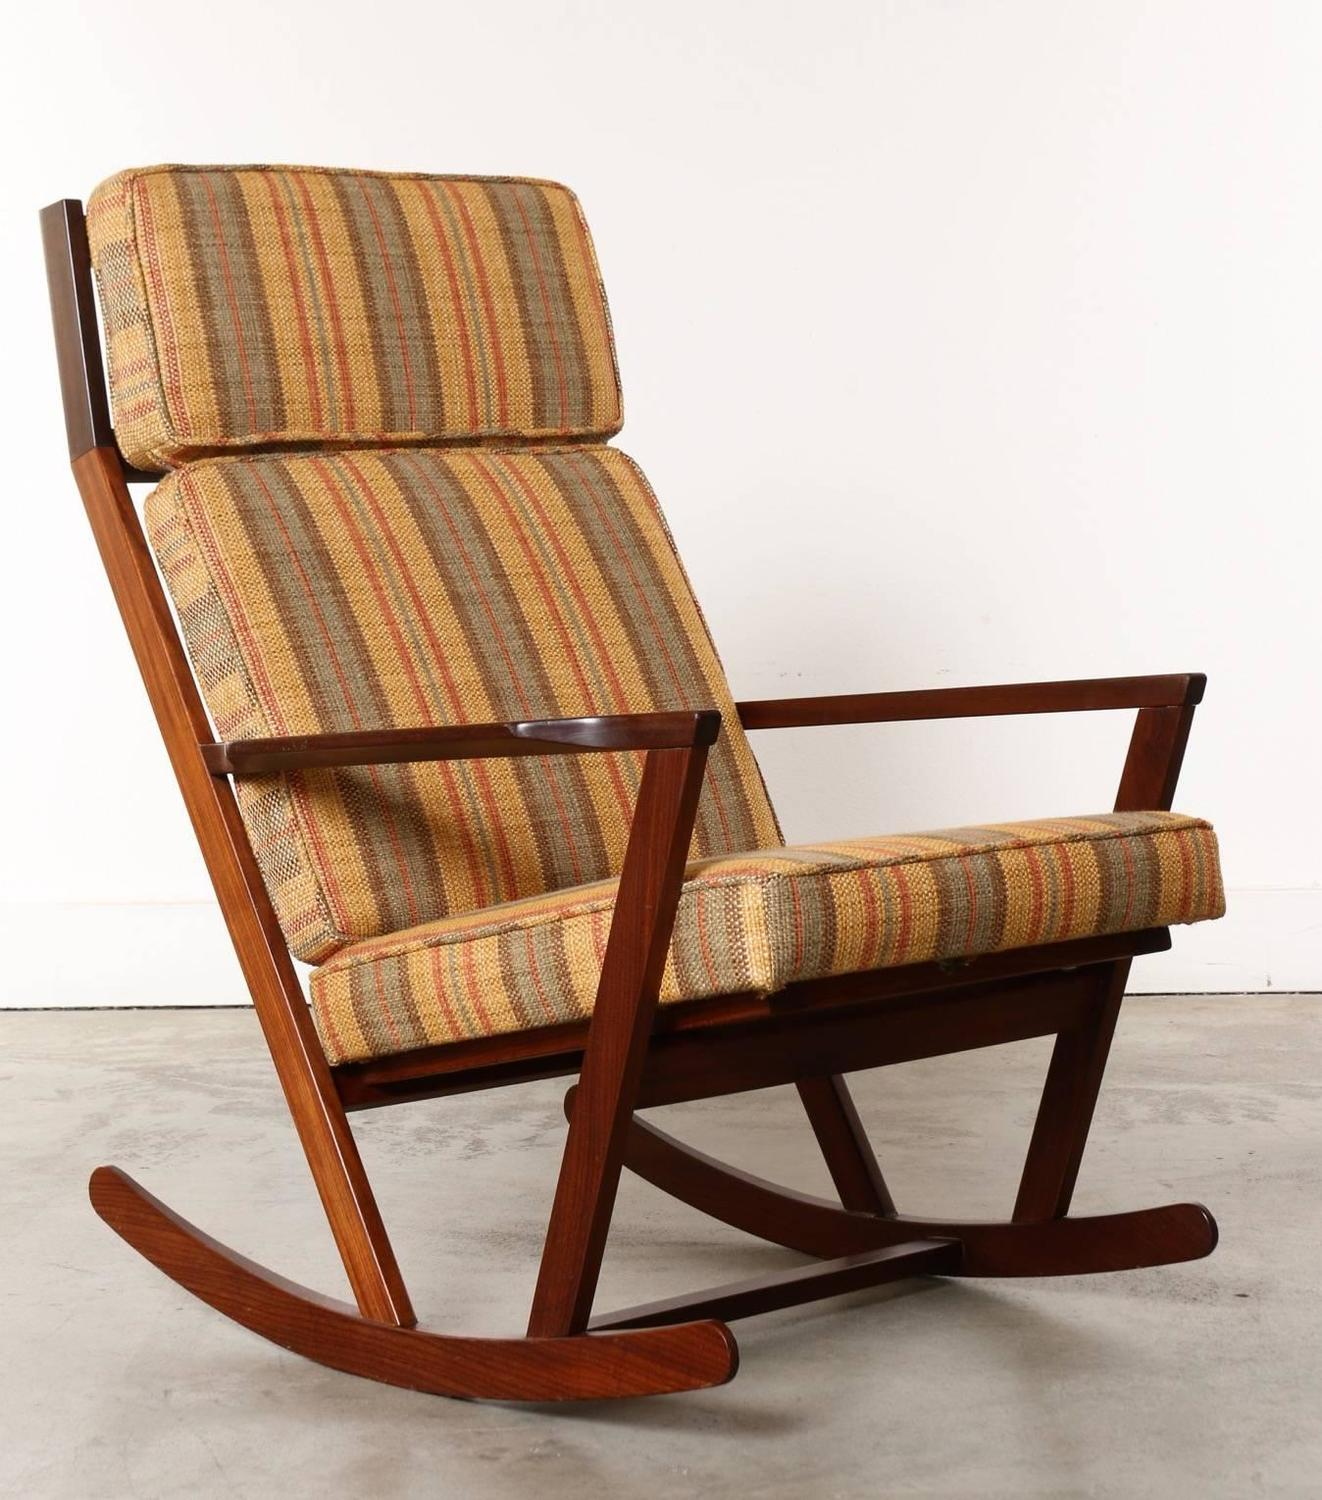 Danish modern wooden rocking chair with cushions designed by poul volther 1960s for sale at 1stdibs - Rocking chair moderne ...